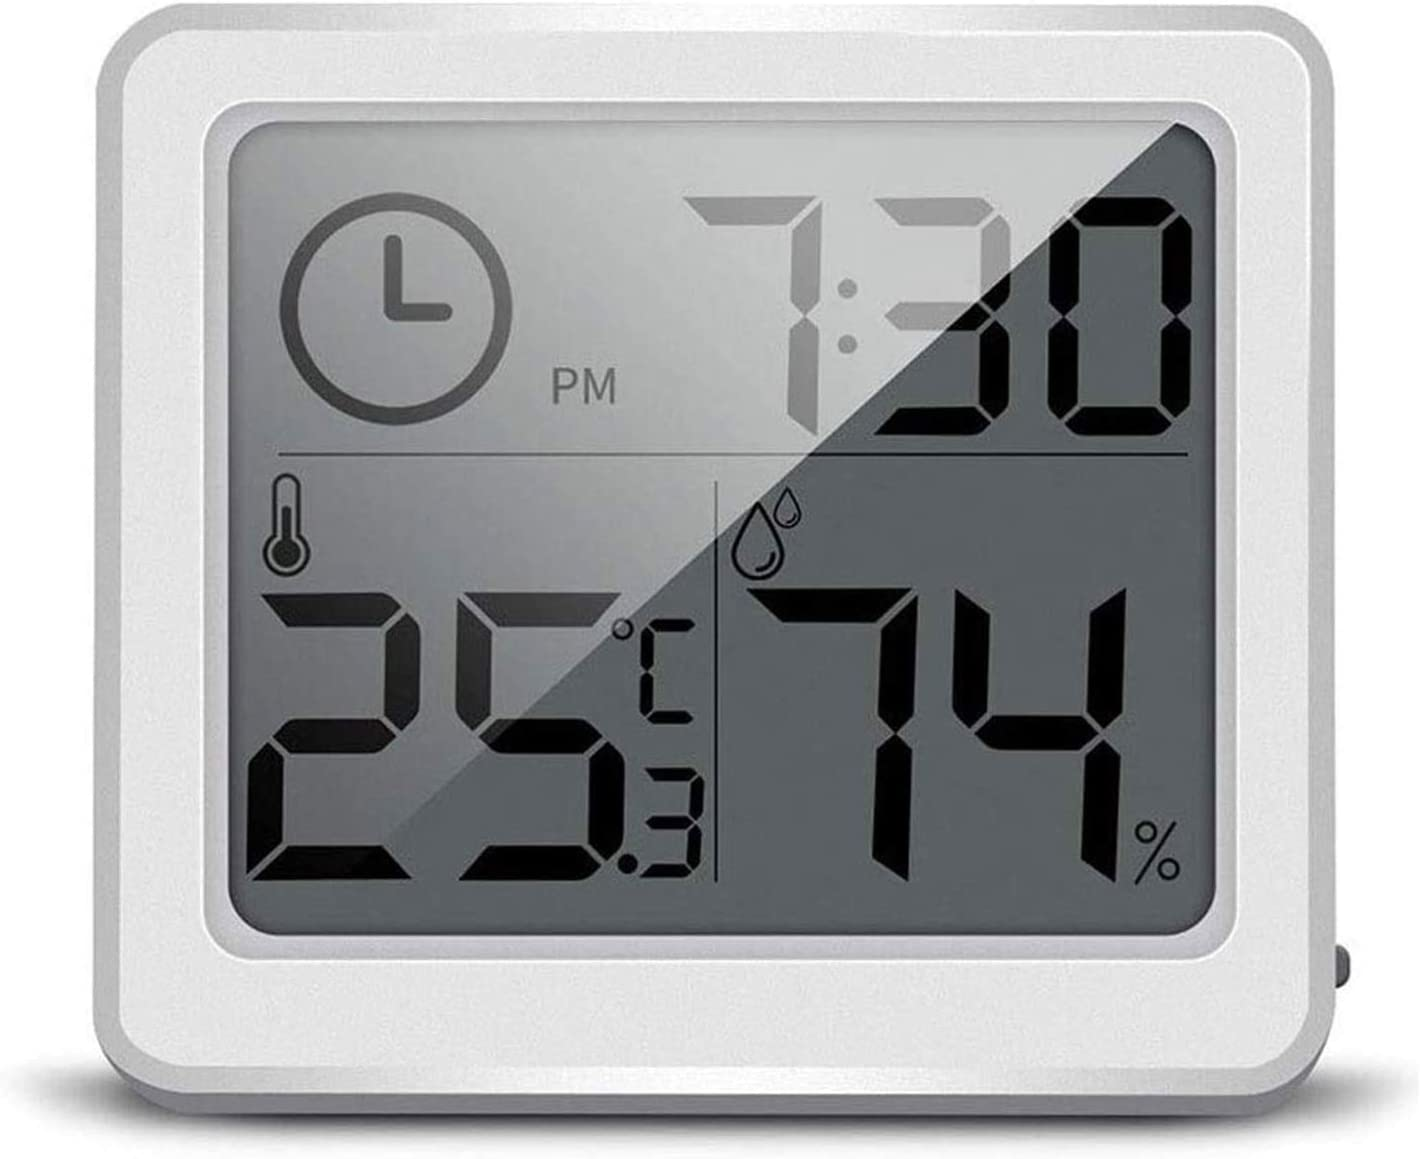 KDLYQ Indoor Rapid rise Room Thermometer Hygrometer Humidity New life Digital Meter